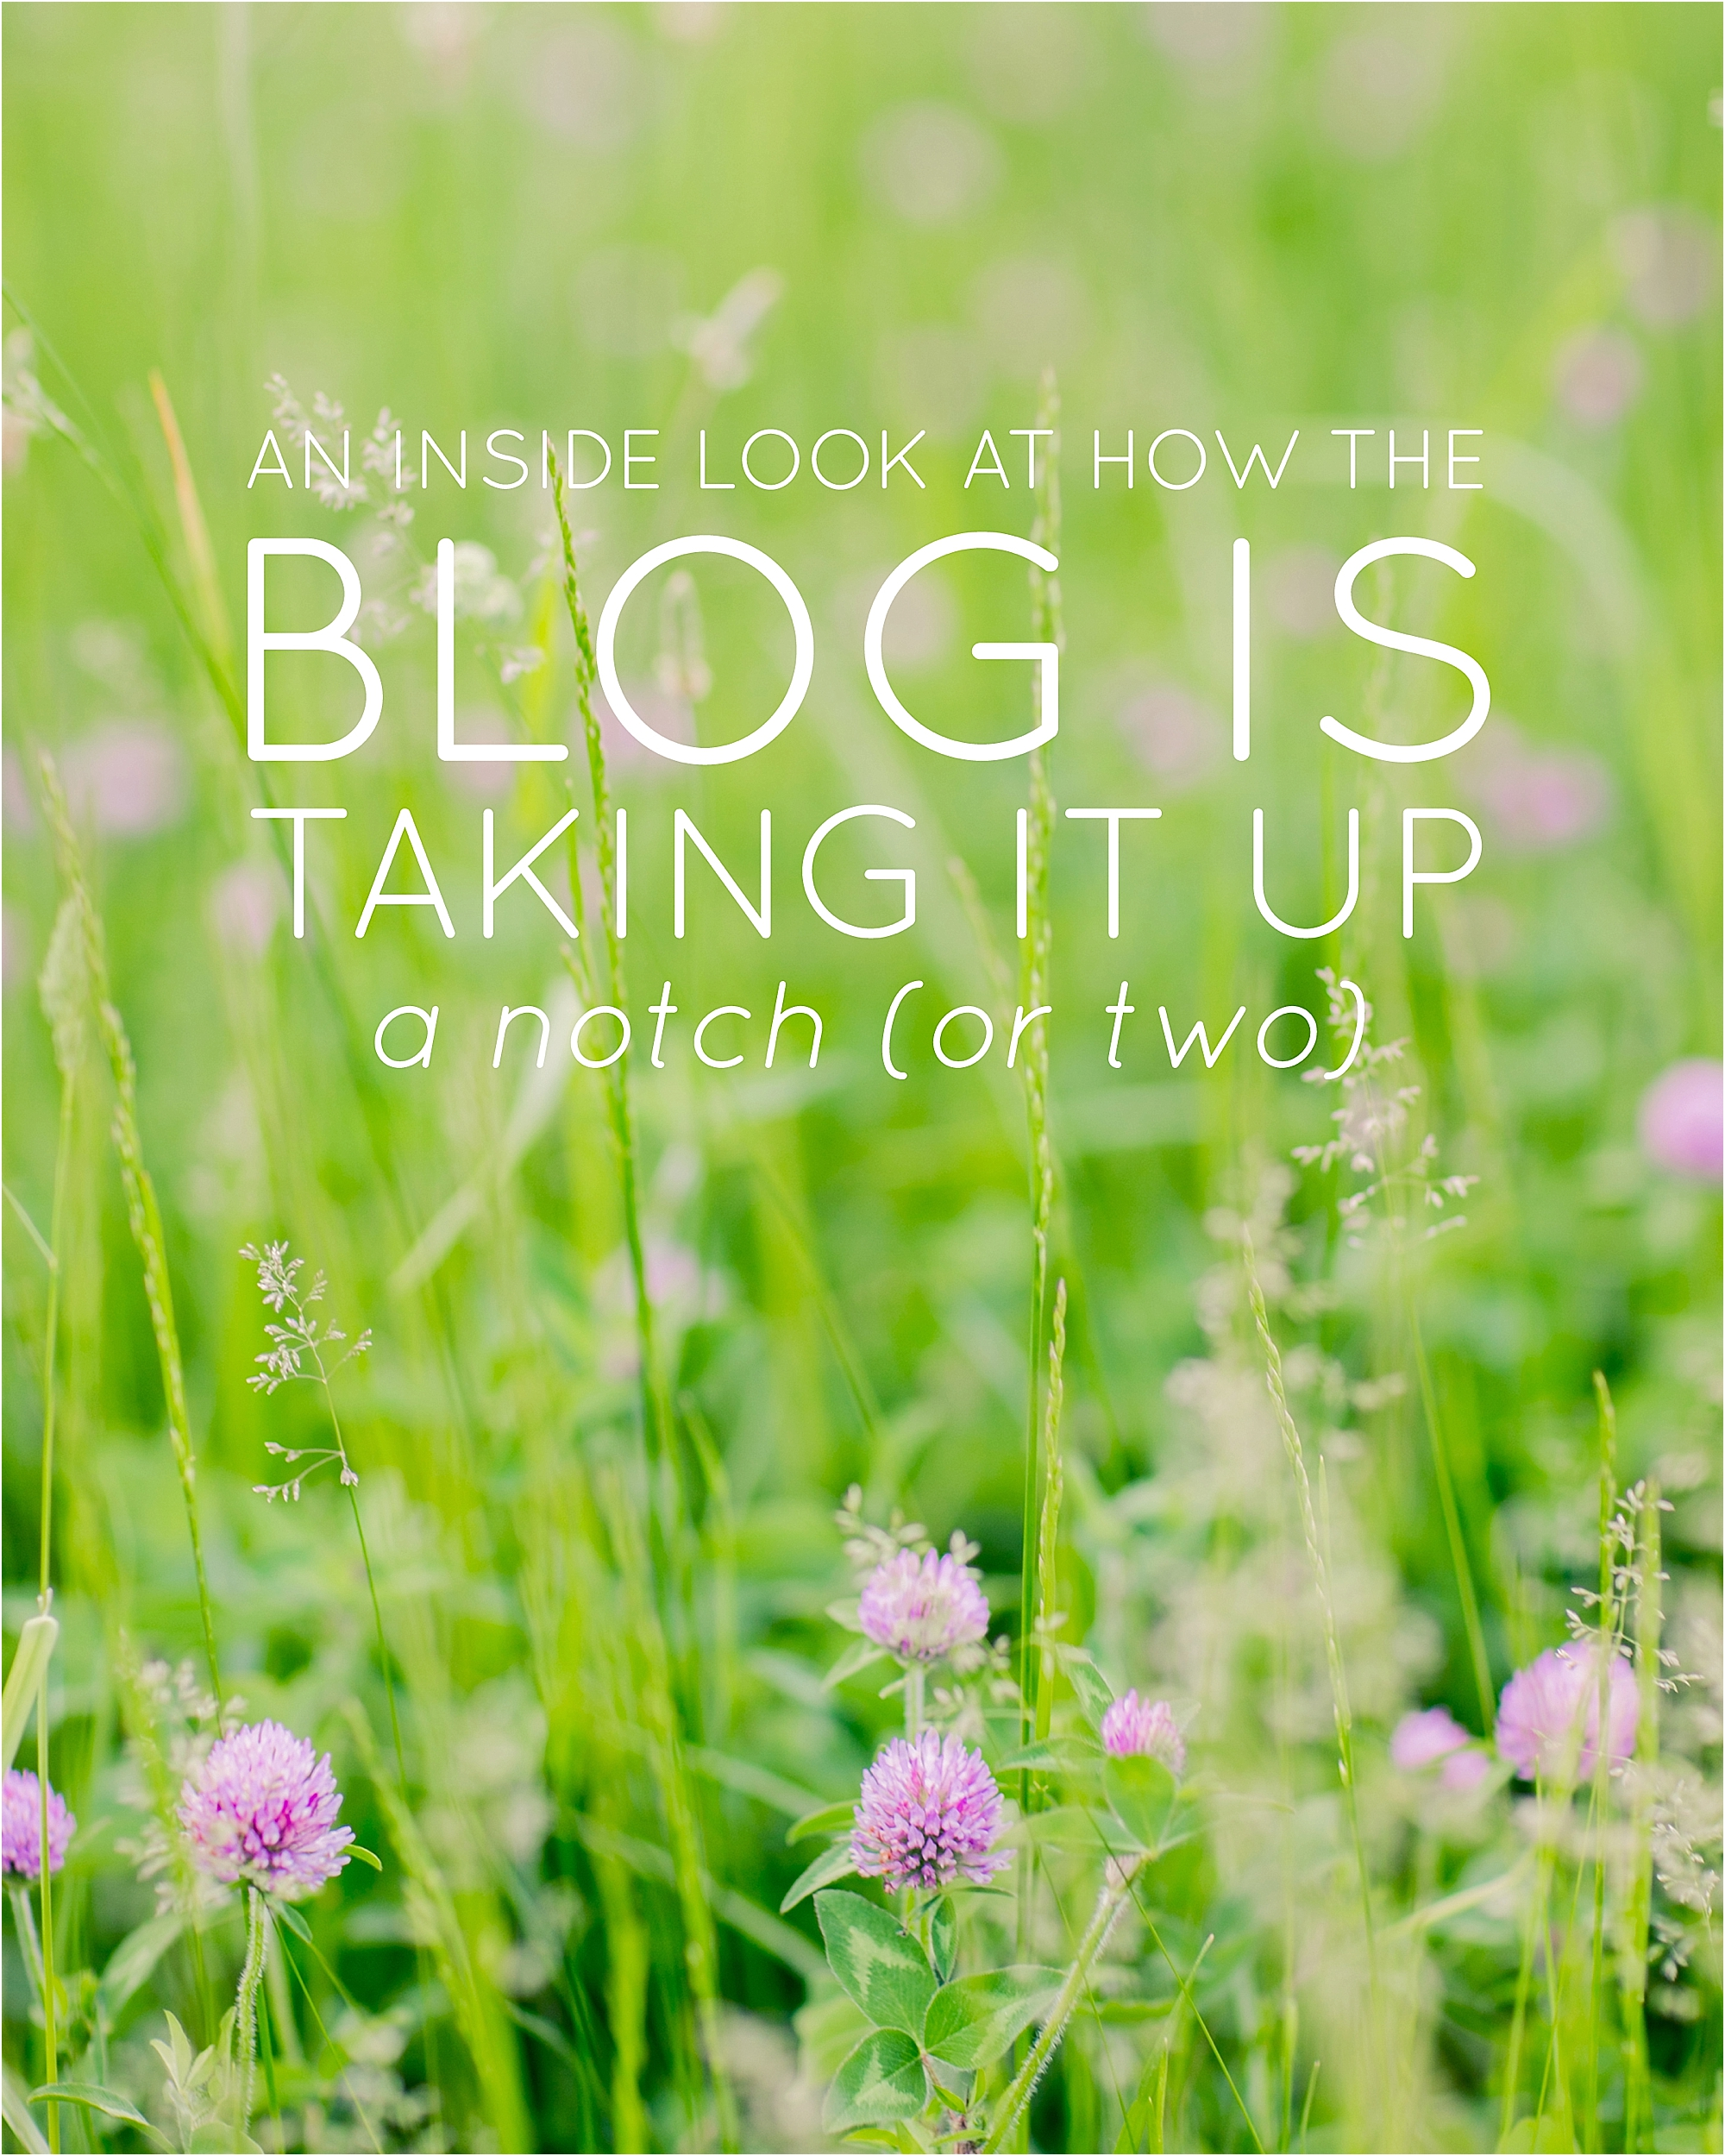 An Inside Look at How the Blog is Changing - The Jordan Brittley Blog